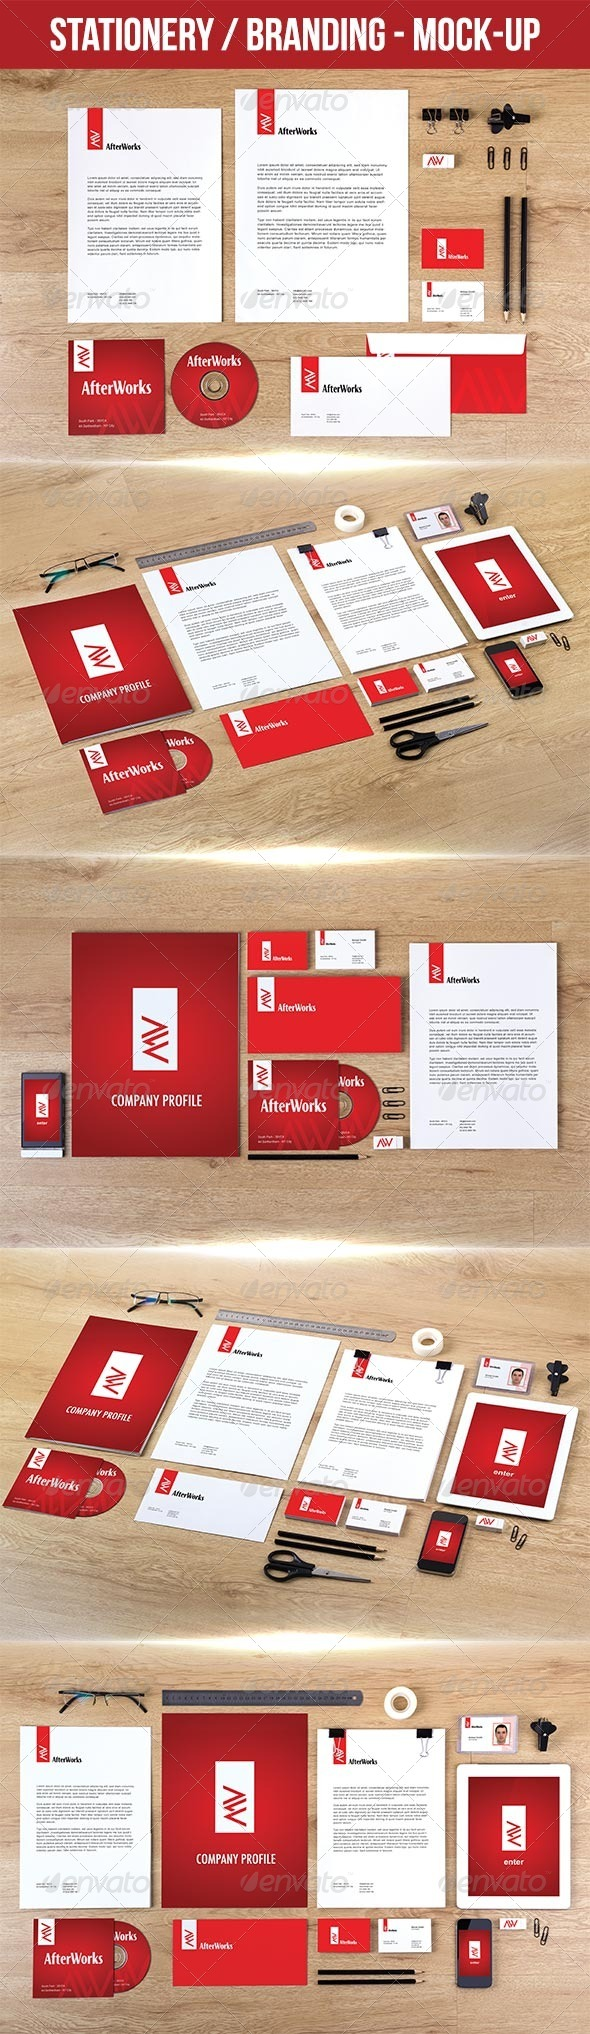 GraphicRiver Stationery Branding Mock-Up 7420809